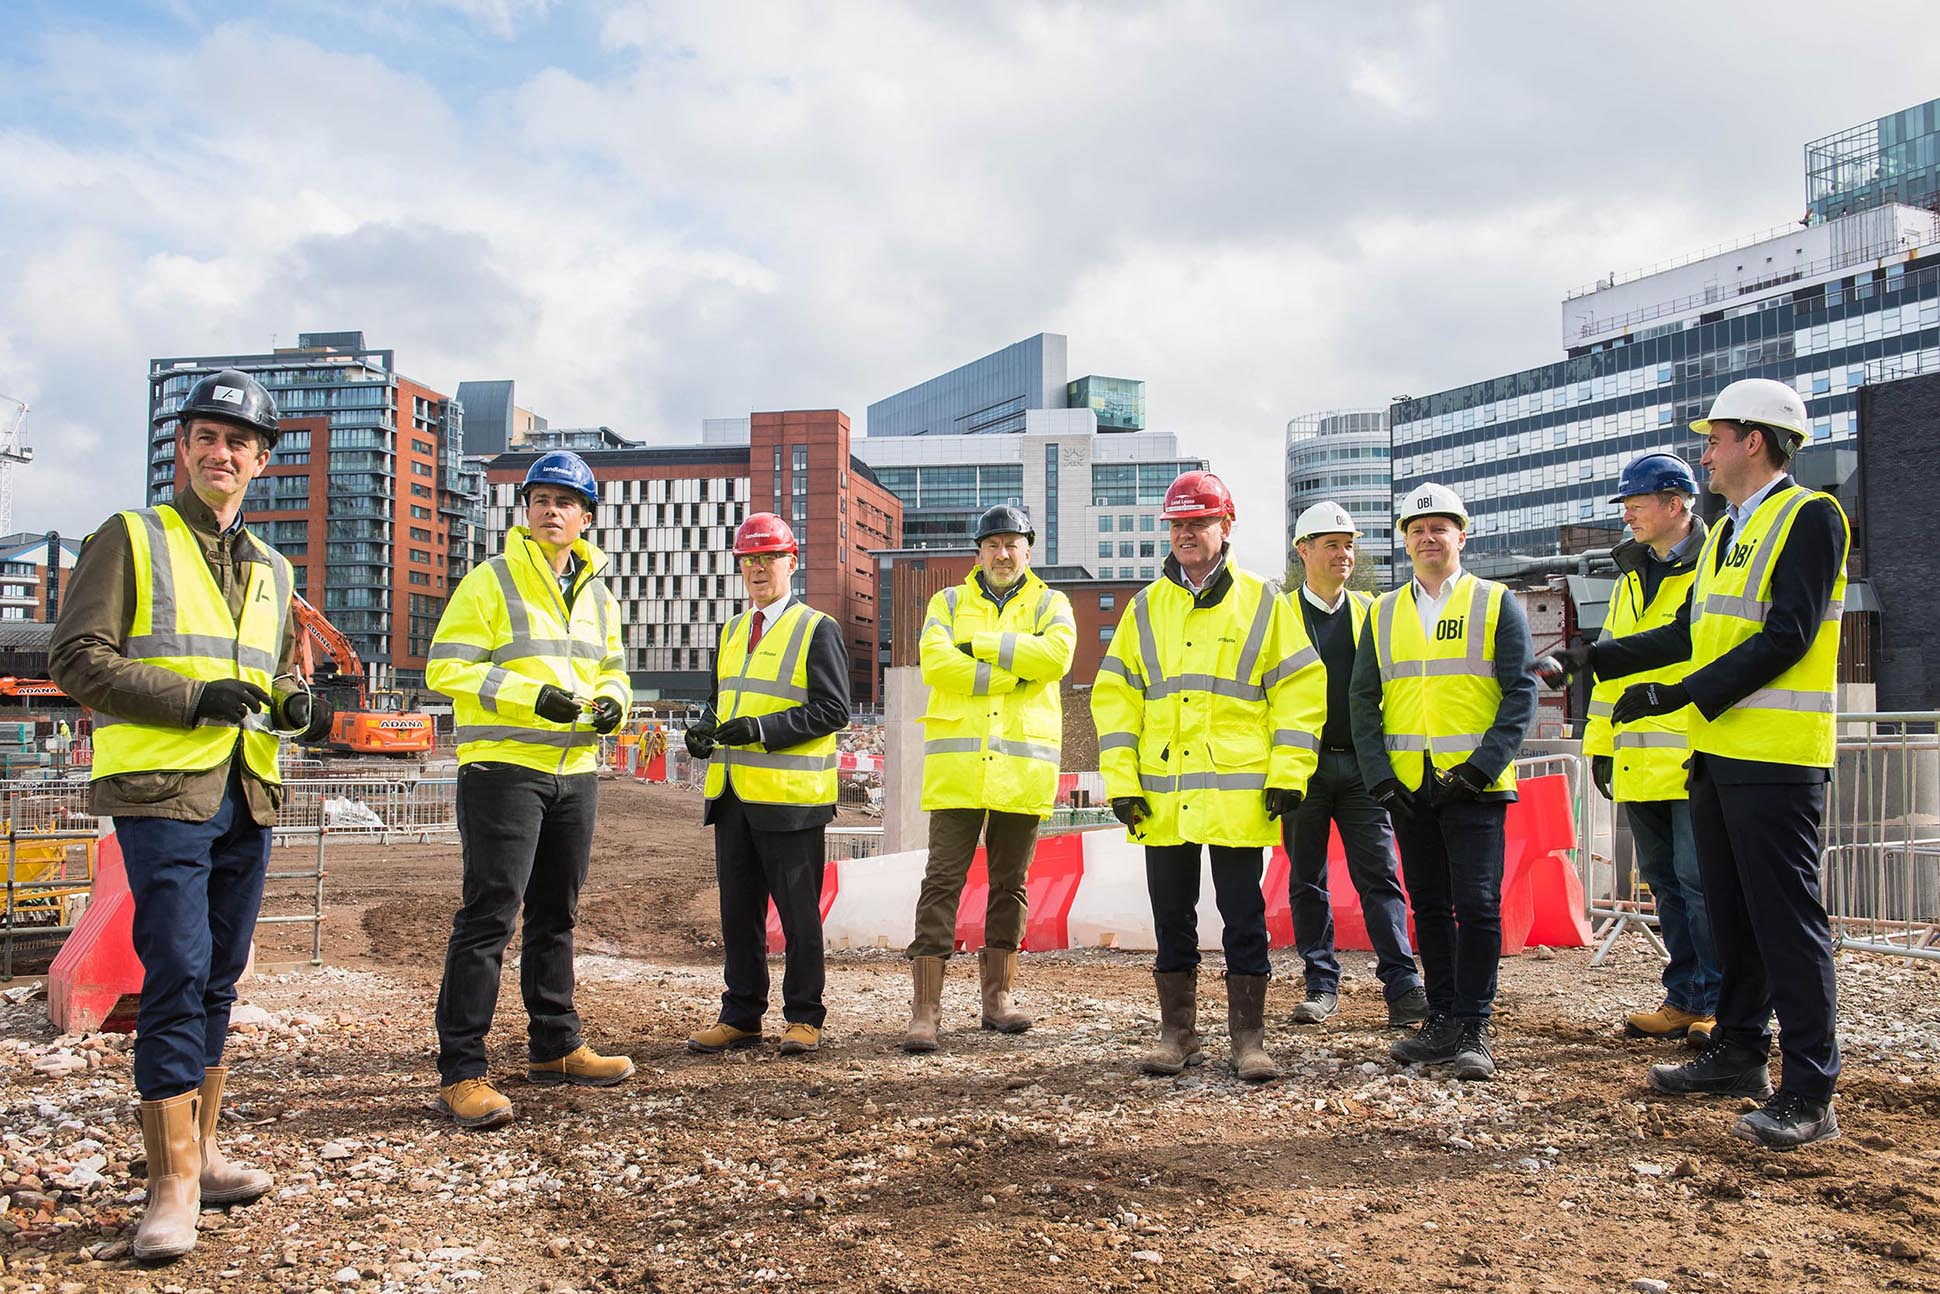 Business leaders meet at construction site in Salford.